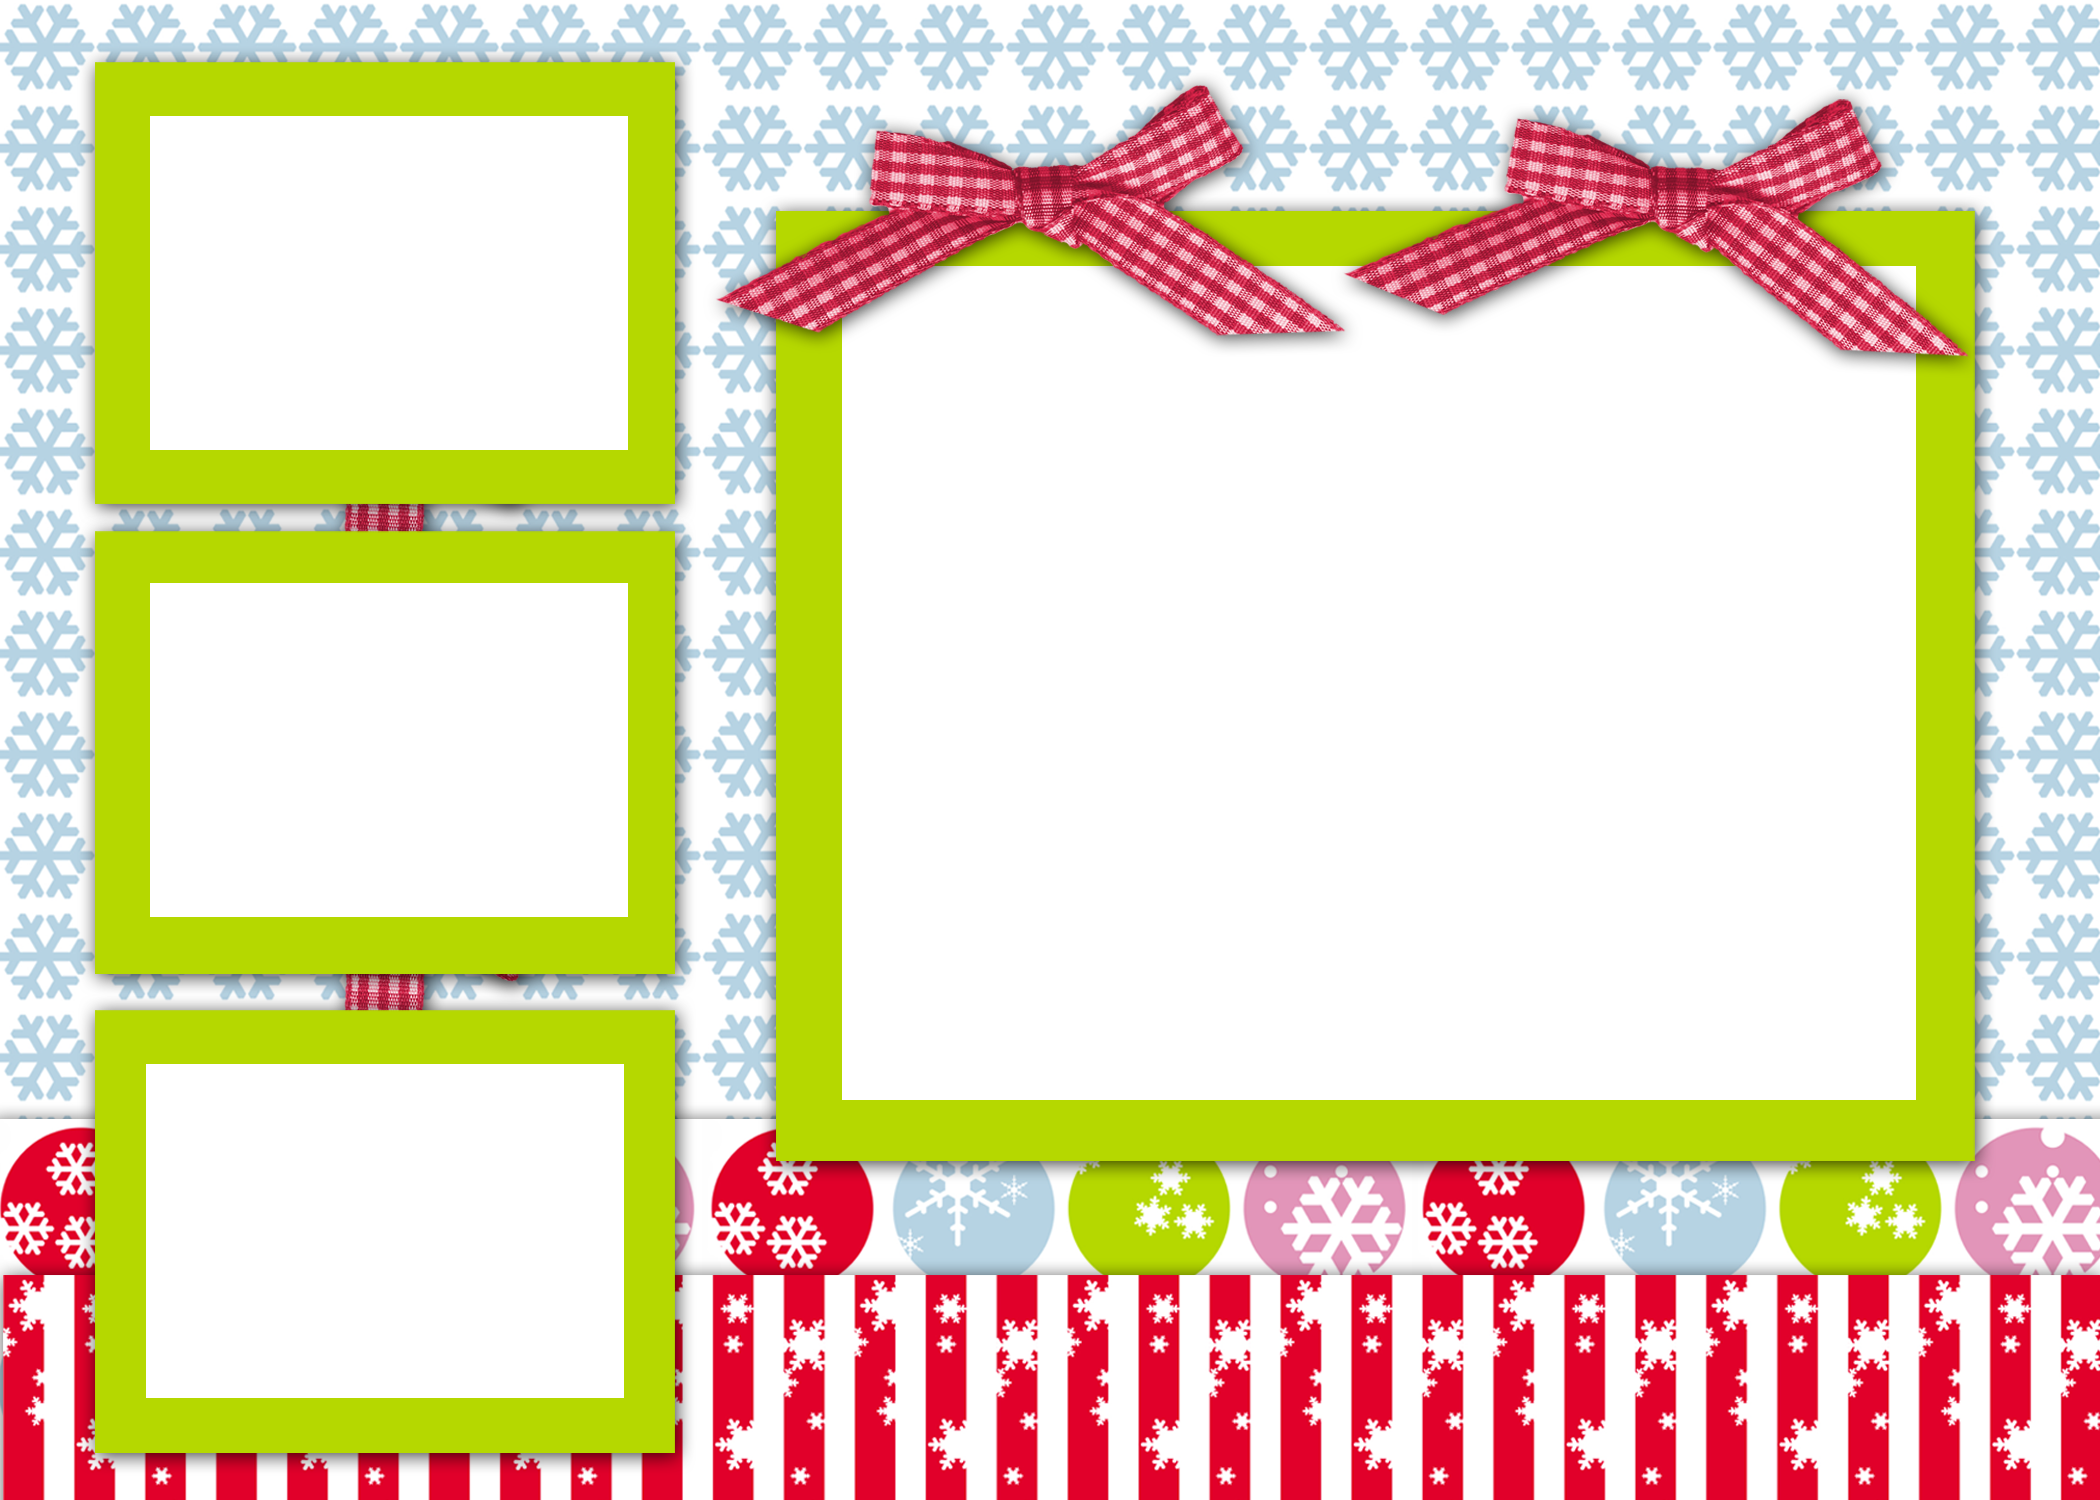 HD Frame Collage Template Png Transparent PNG Image Download.